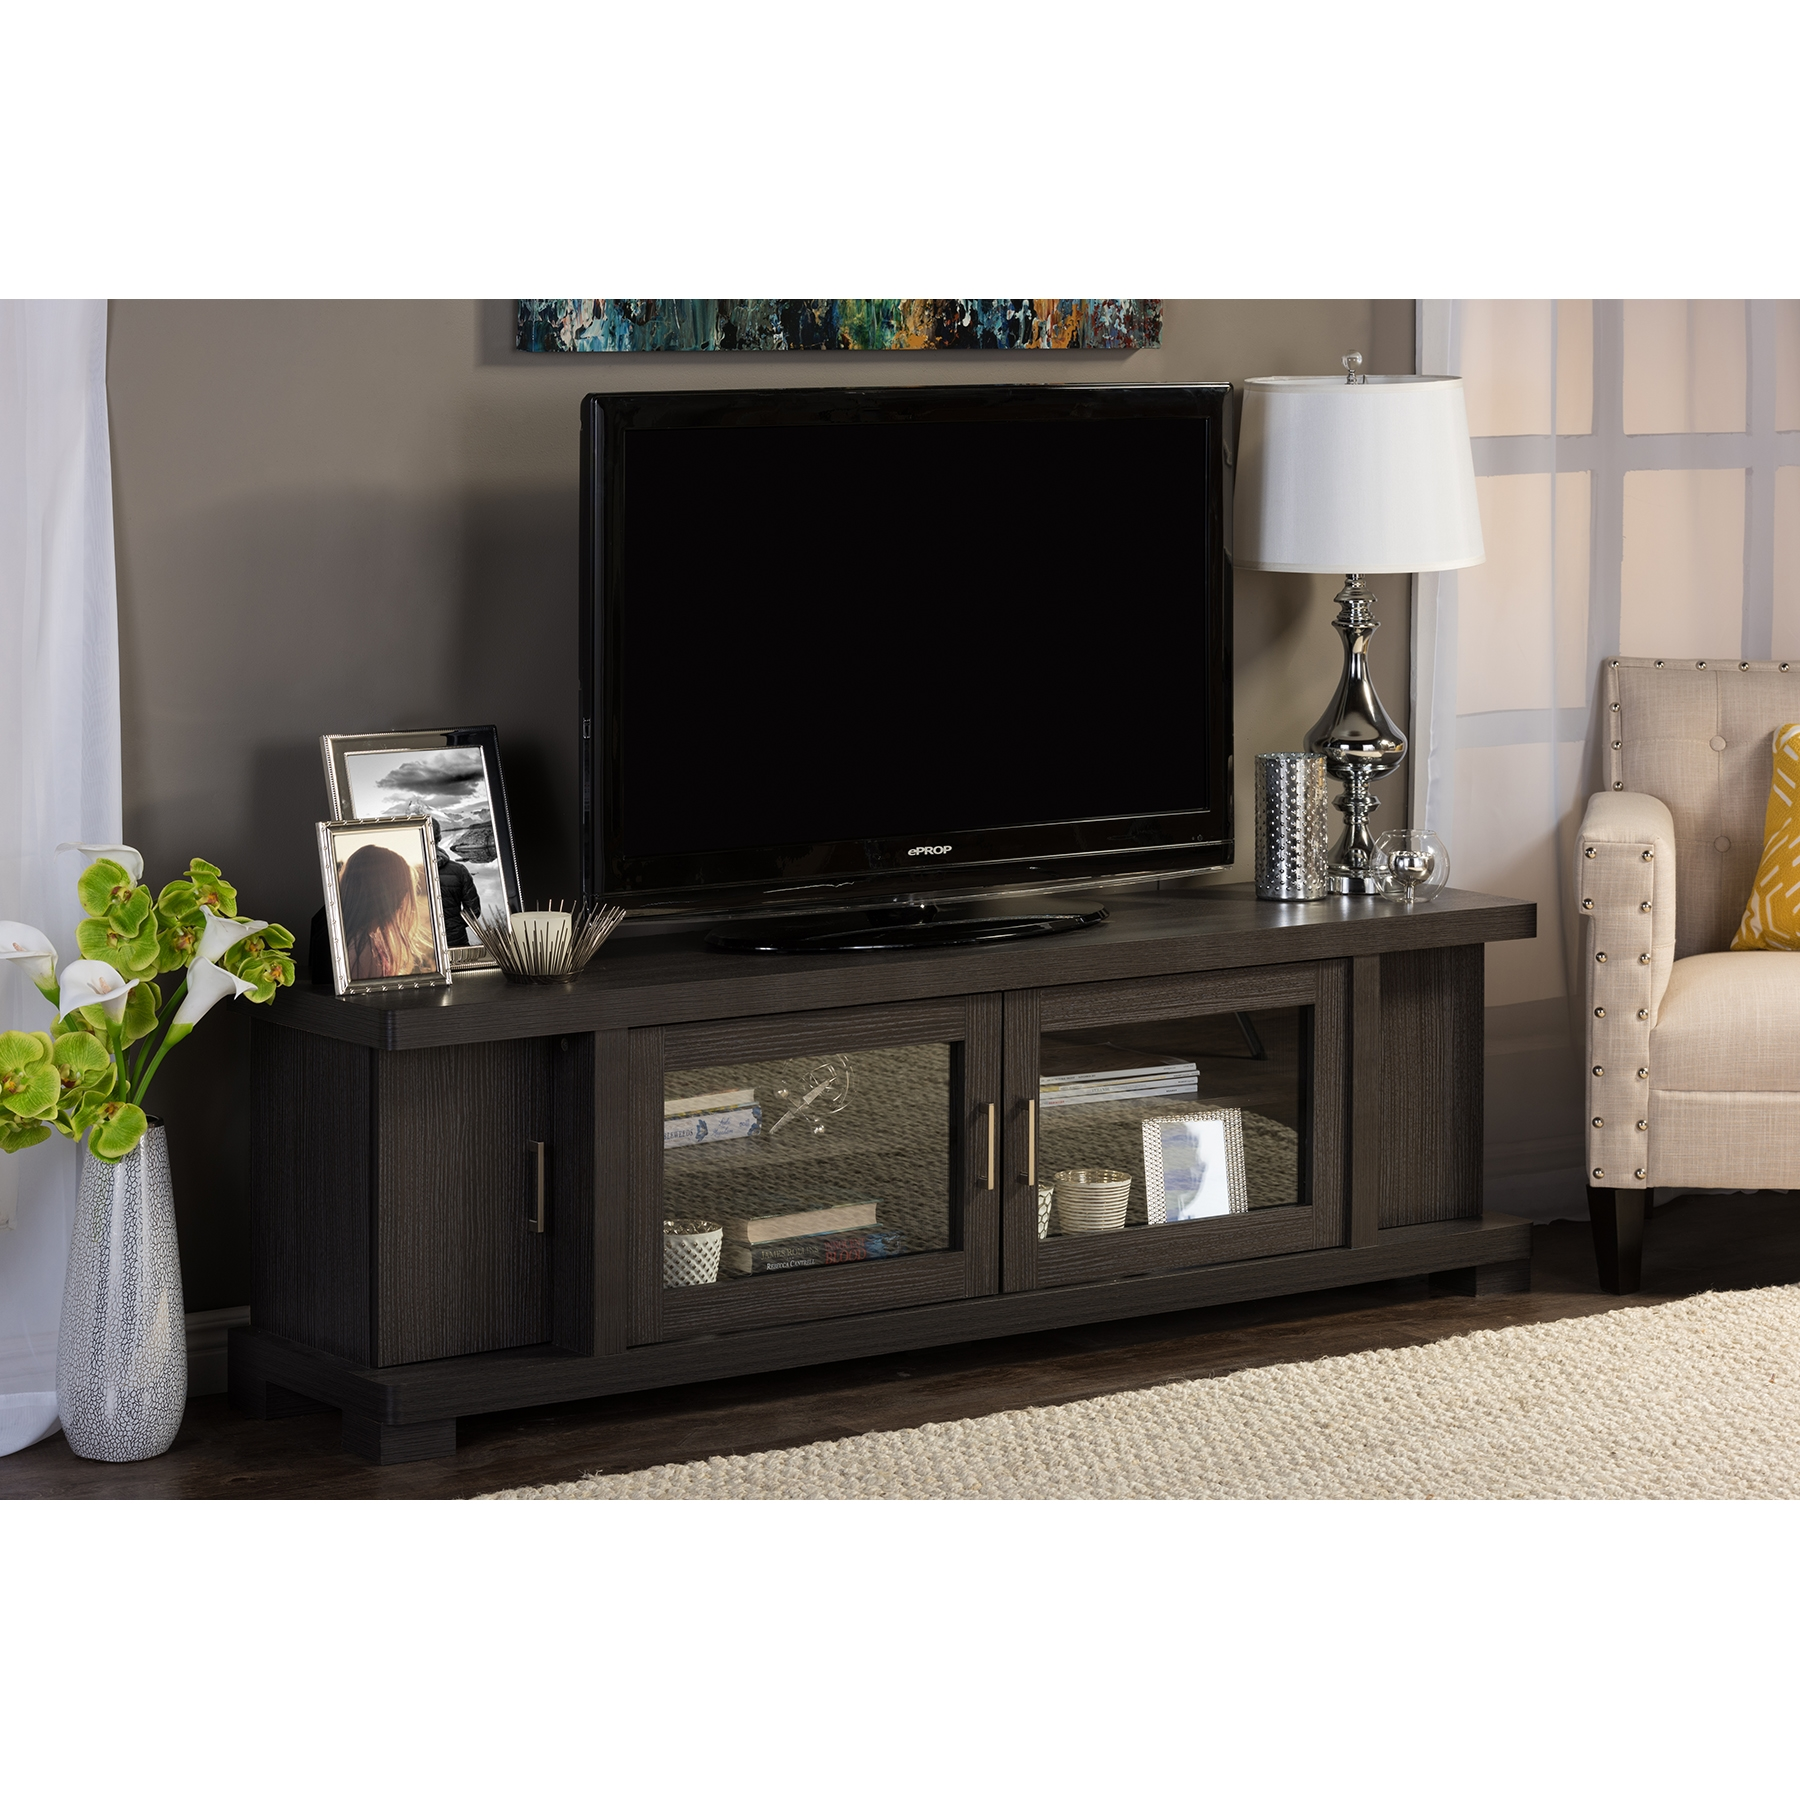 ... Baxton Studio Viveka 70 Inch Dark Brown Wood TV Cabinet With 2 Glass  Doors And